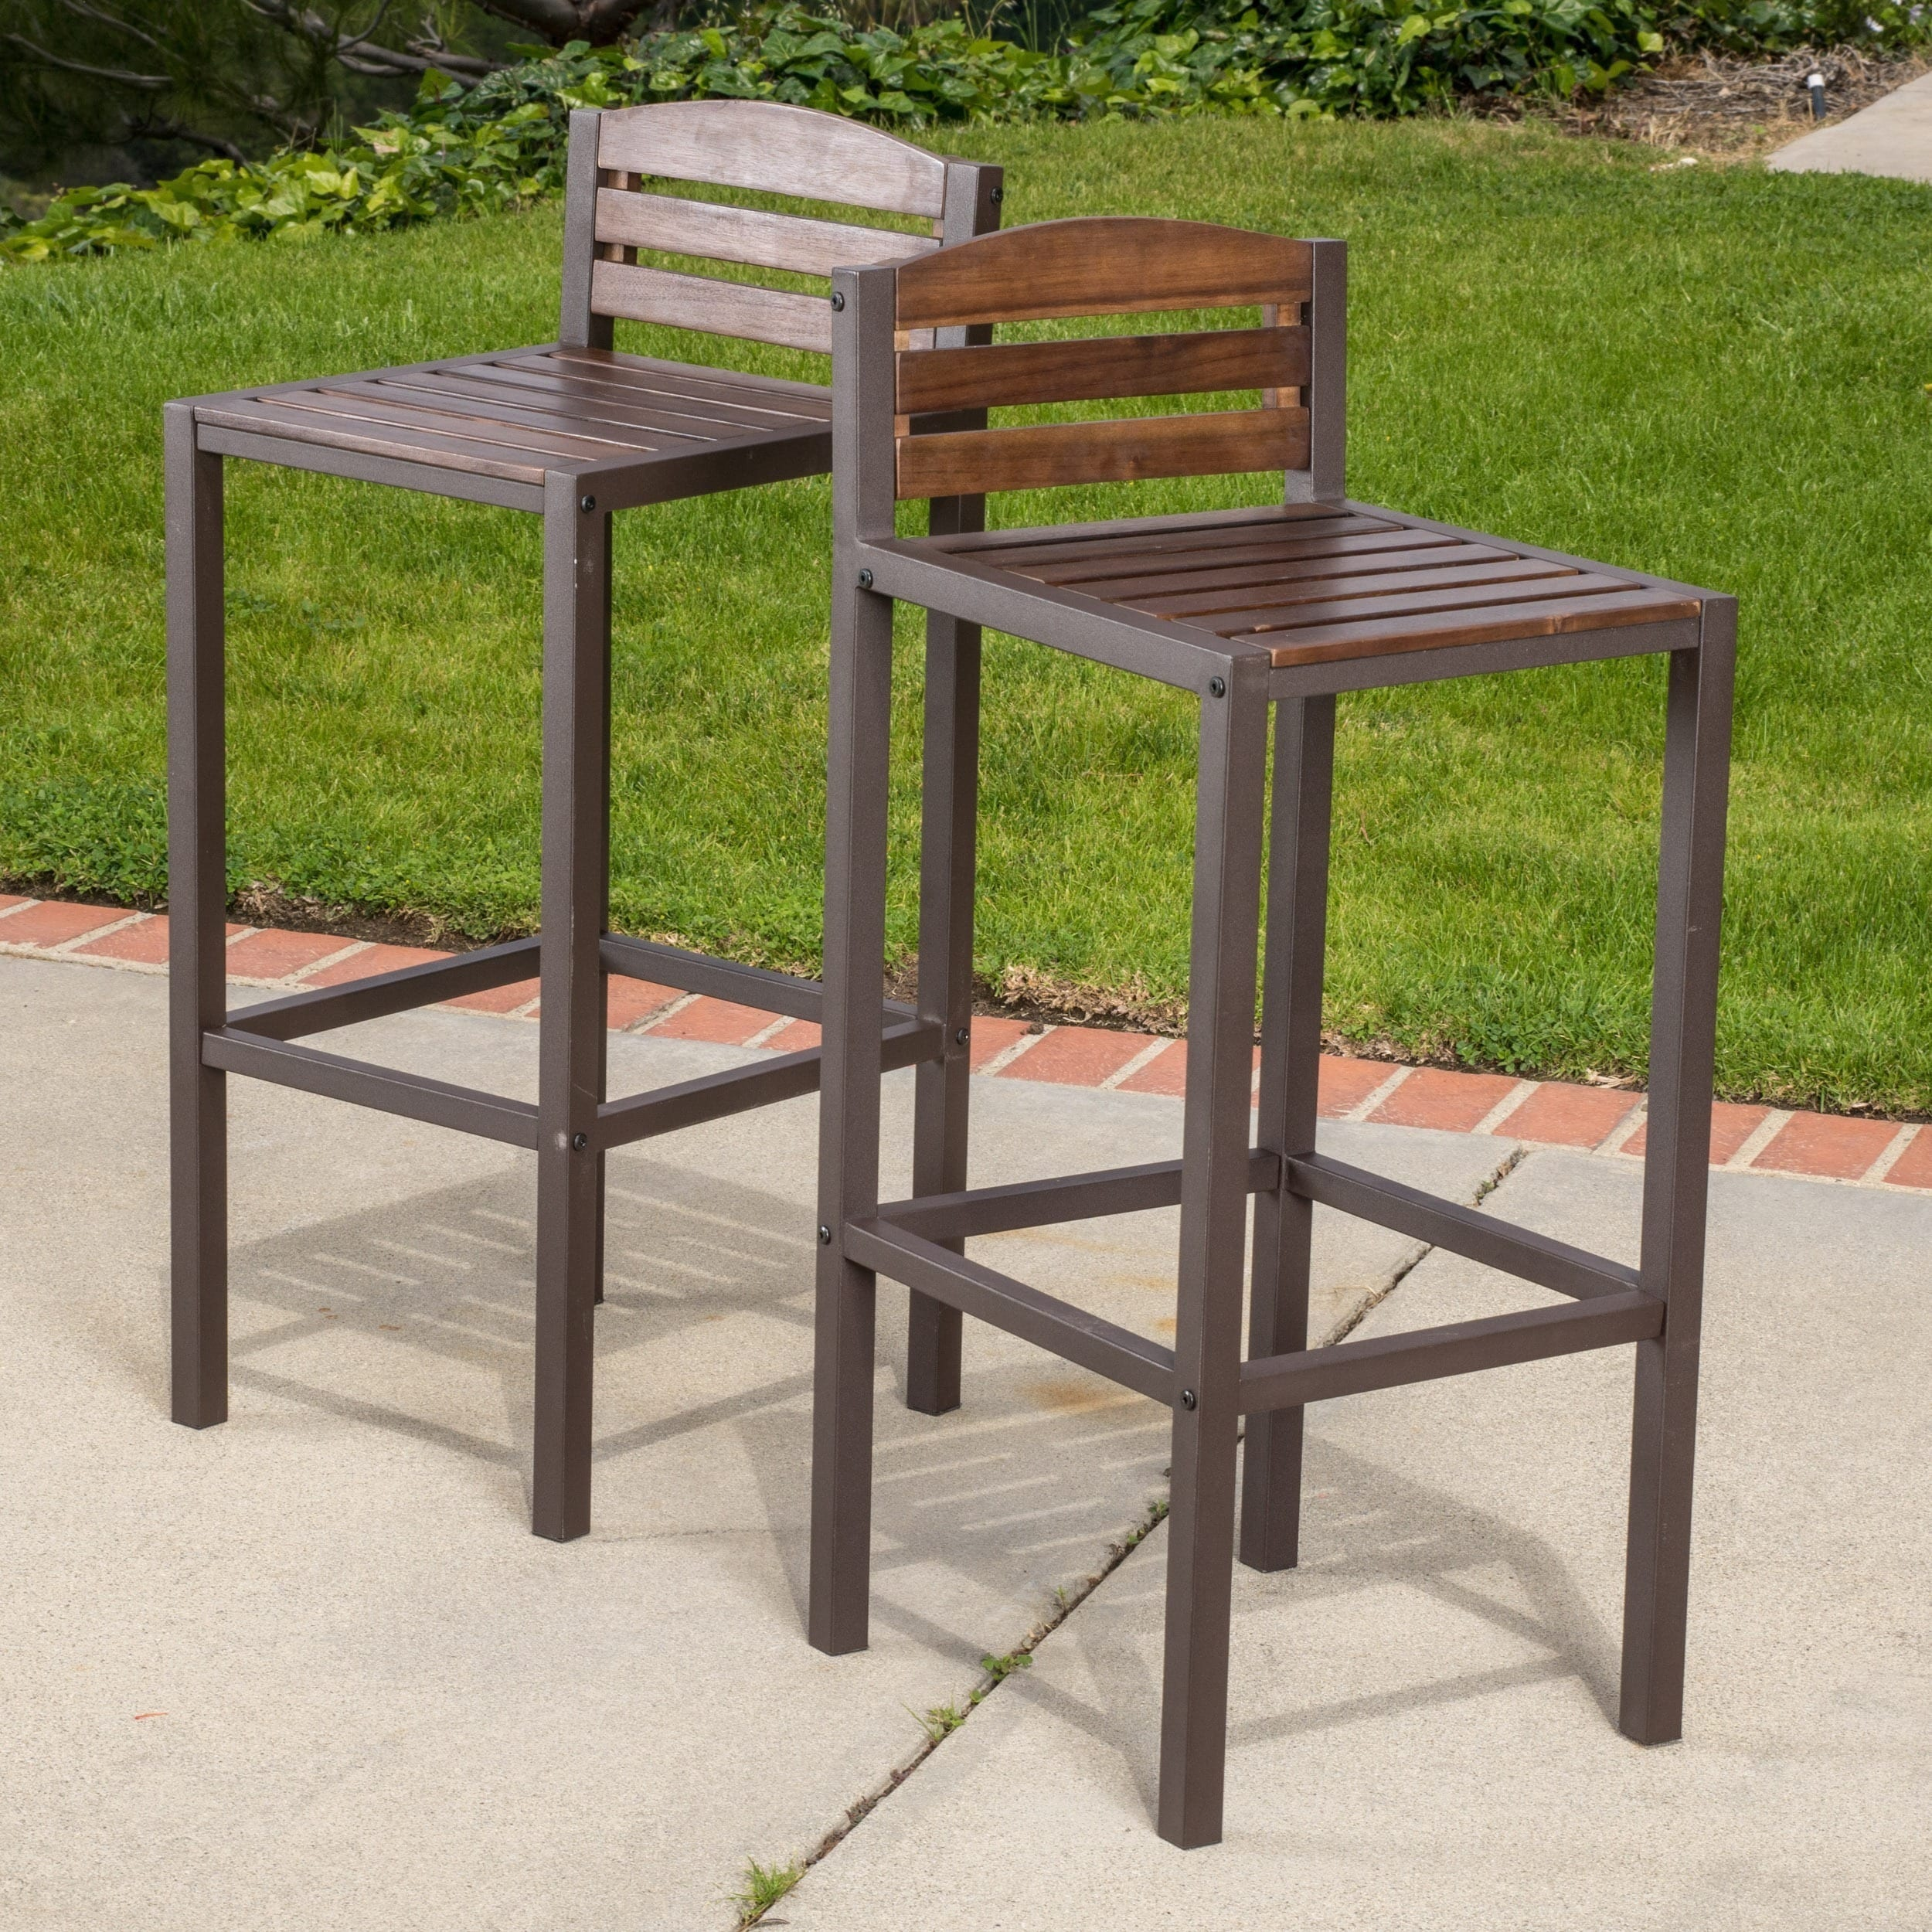 Shop milos outdoor acacia wood barstool set of 2 by christopher knight home on sale free shipping today overstock com 11414216